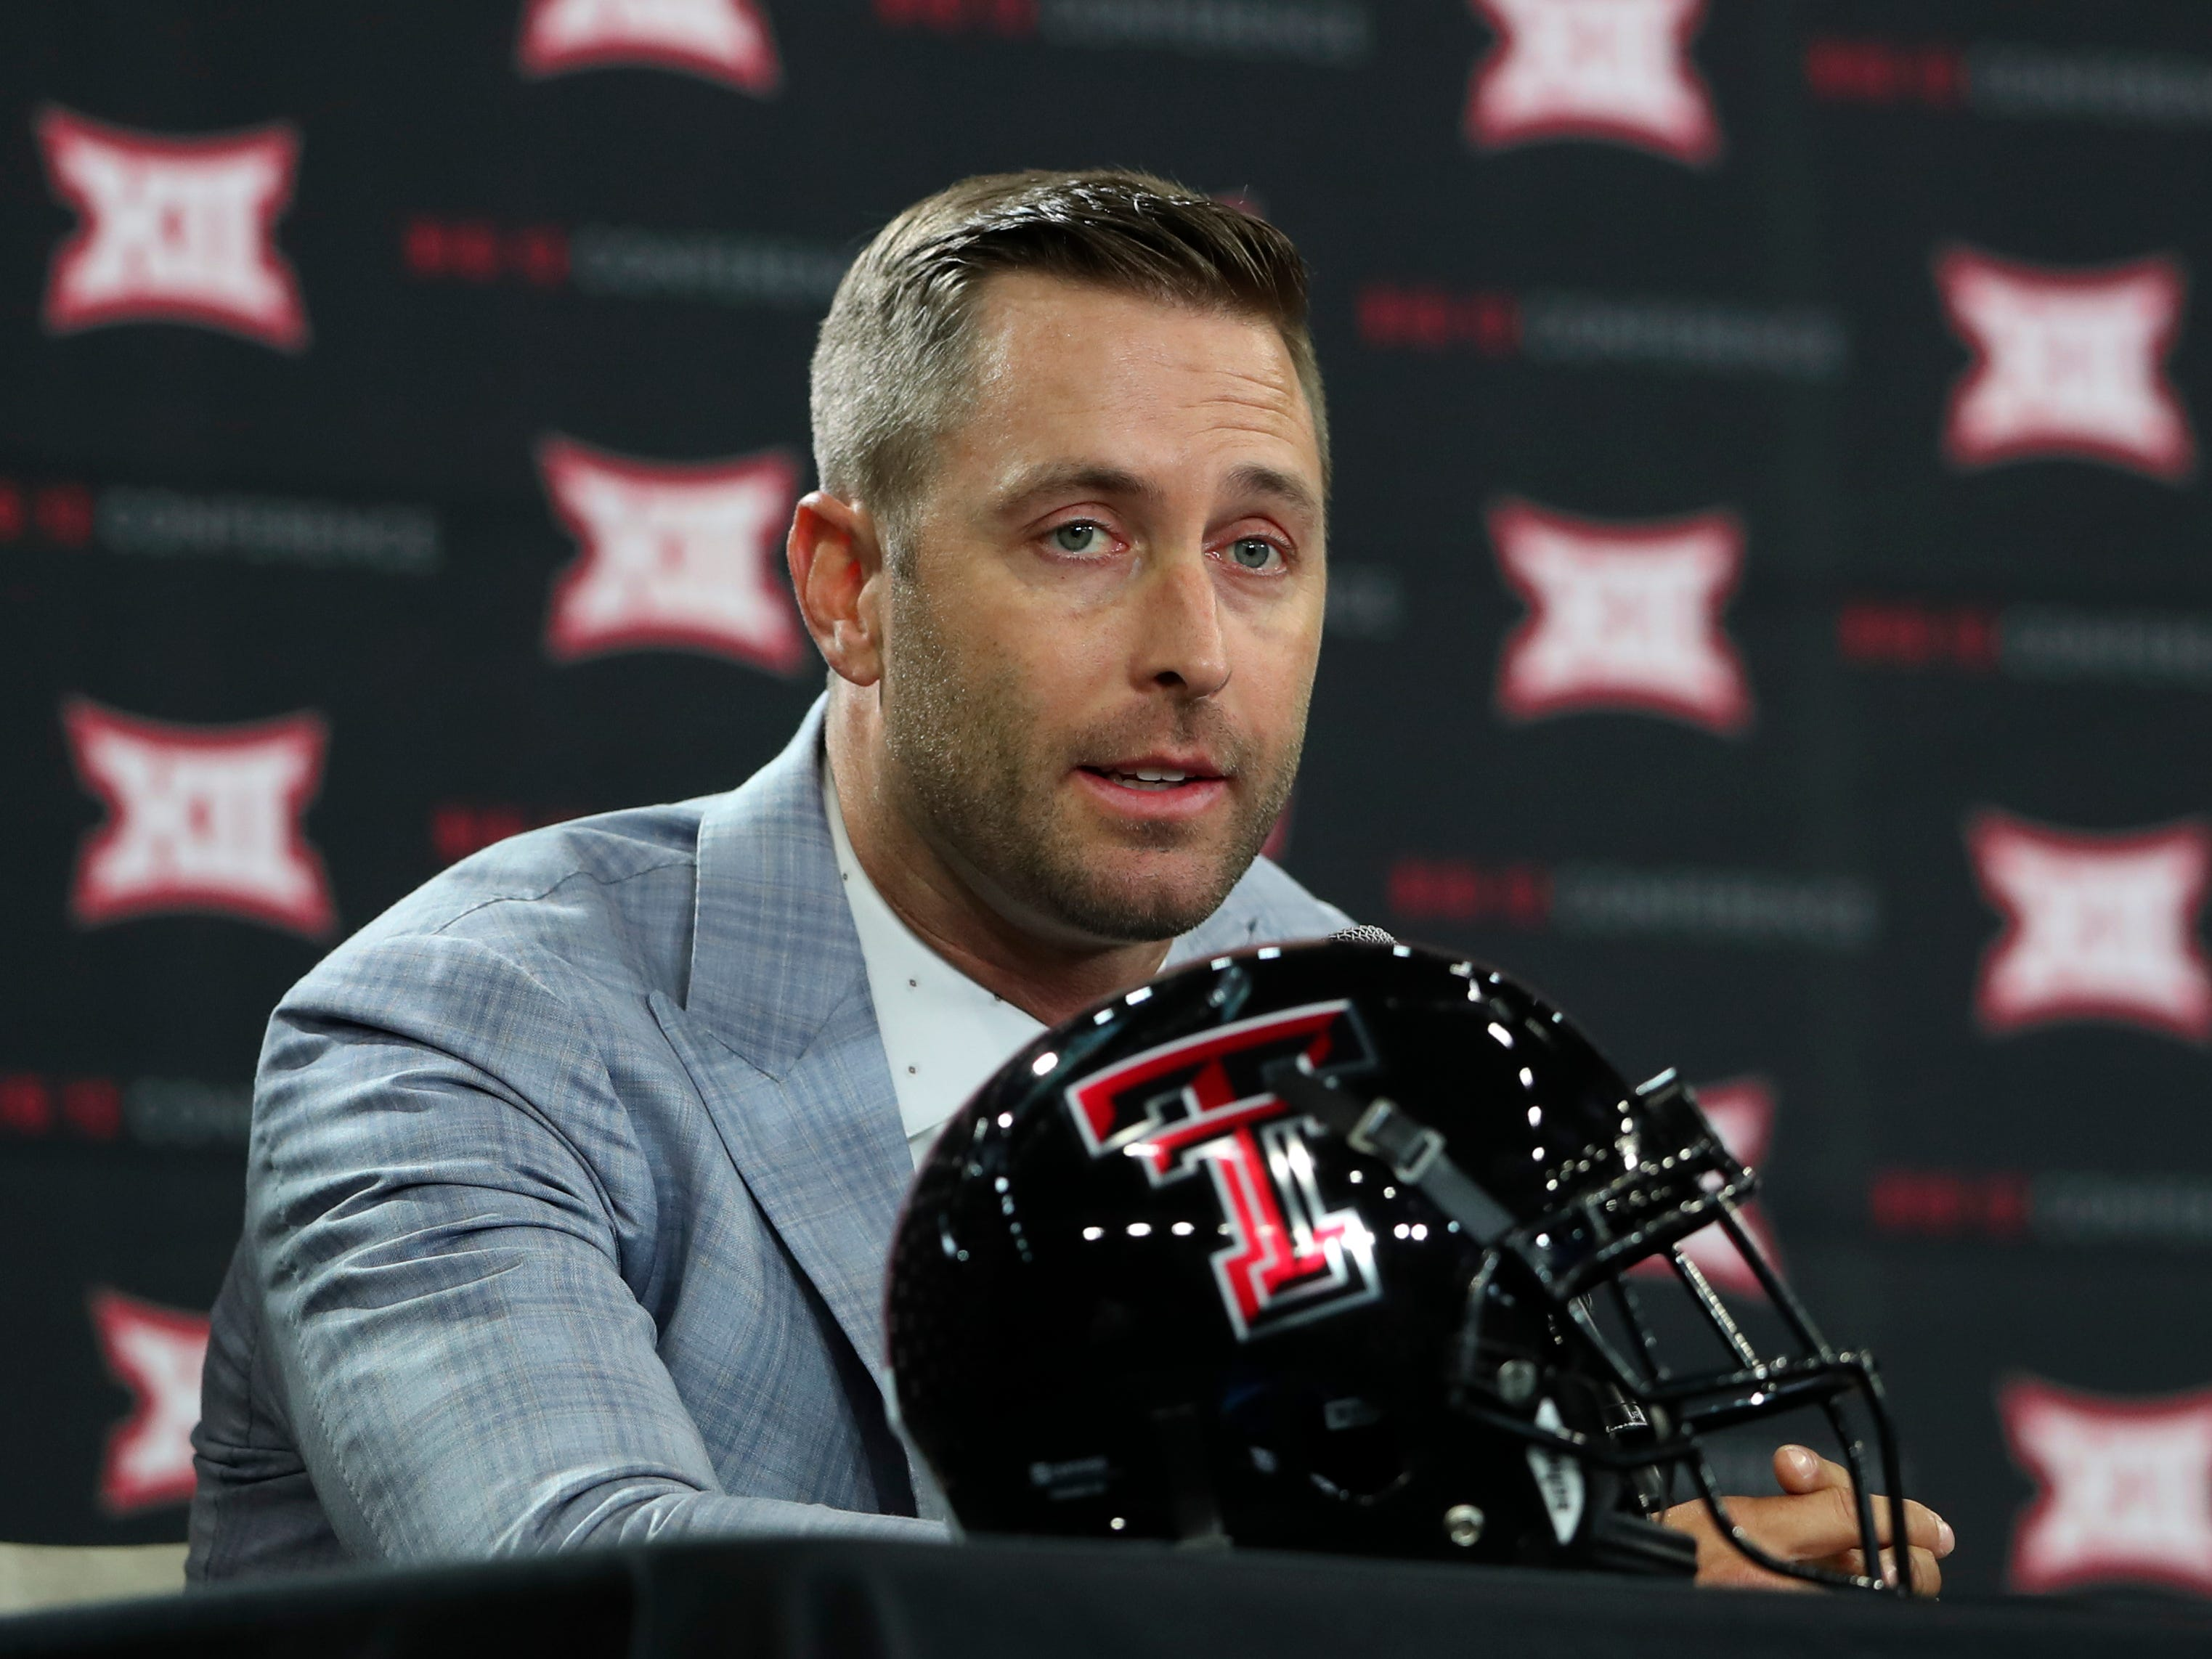 Texas Tech head coach Kliff Kingsbury speaks to the media during the 2017 Big 12 media days at the Frisco Star Ford Center outside Dallas.